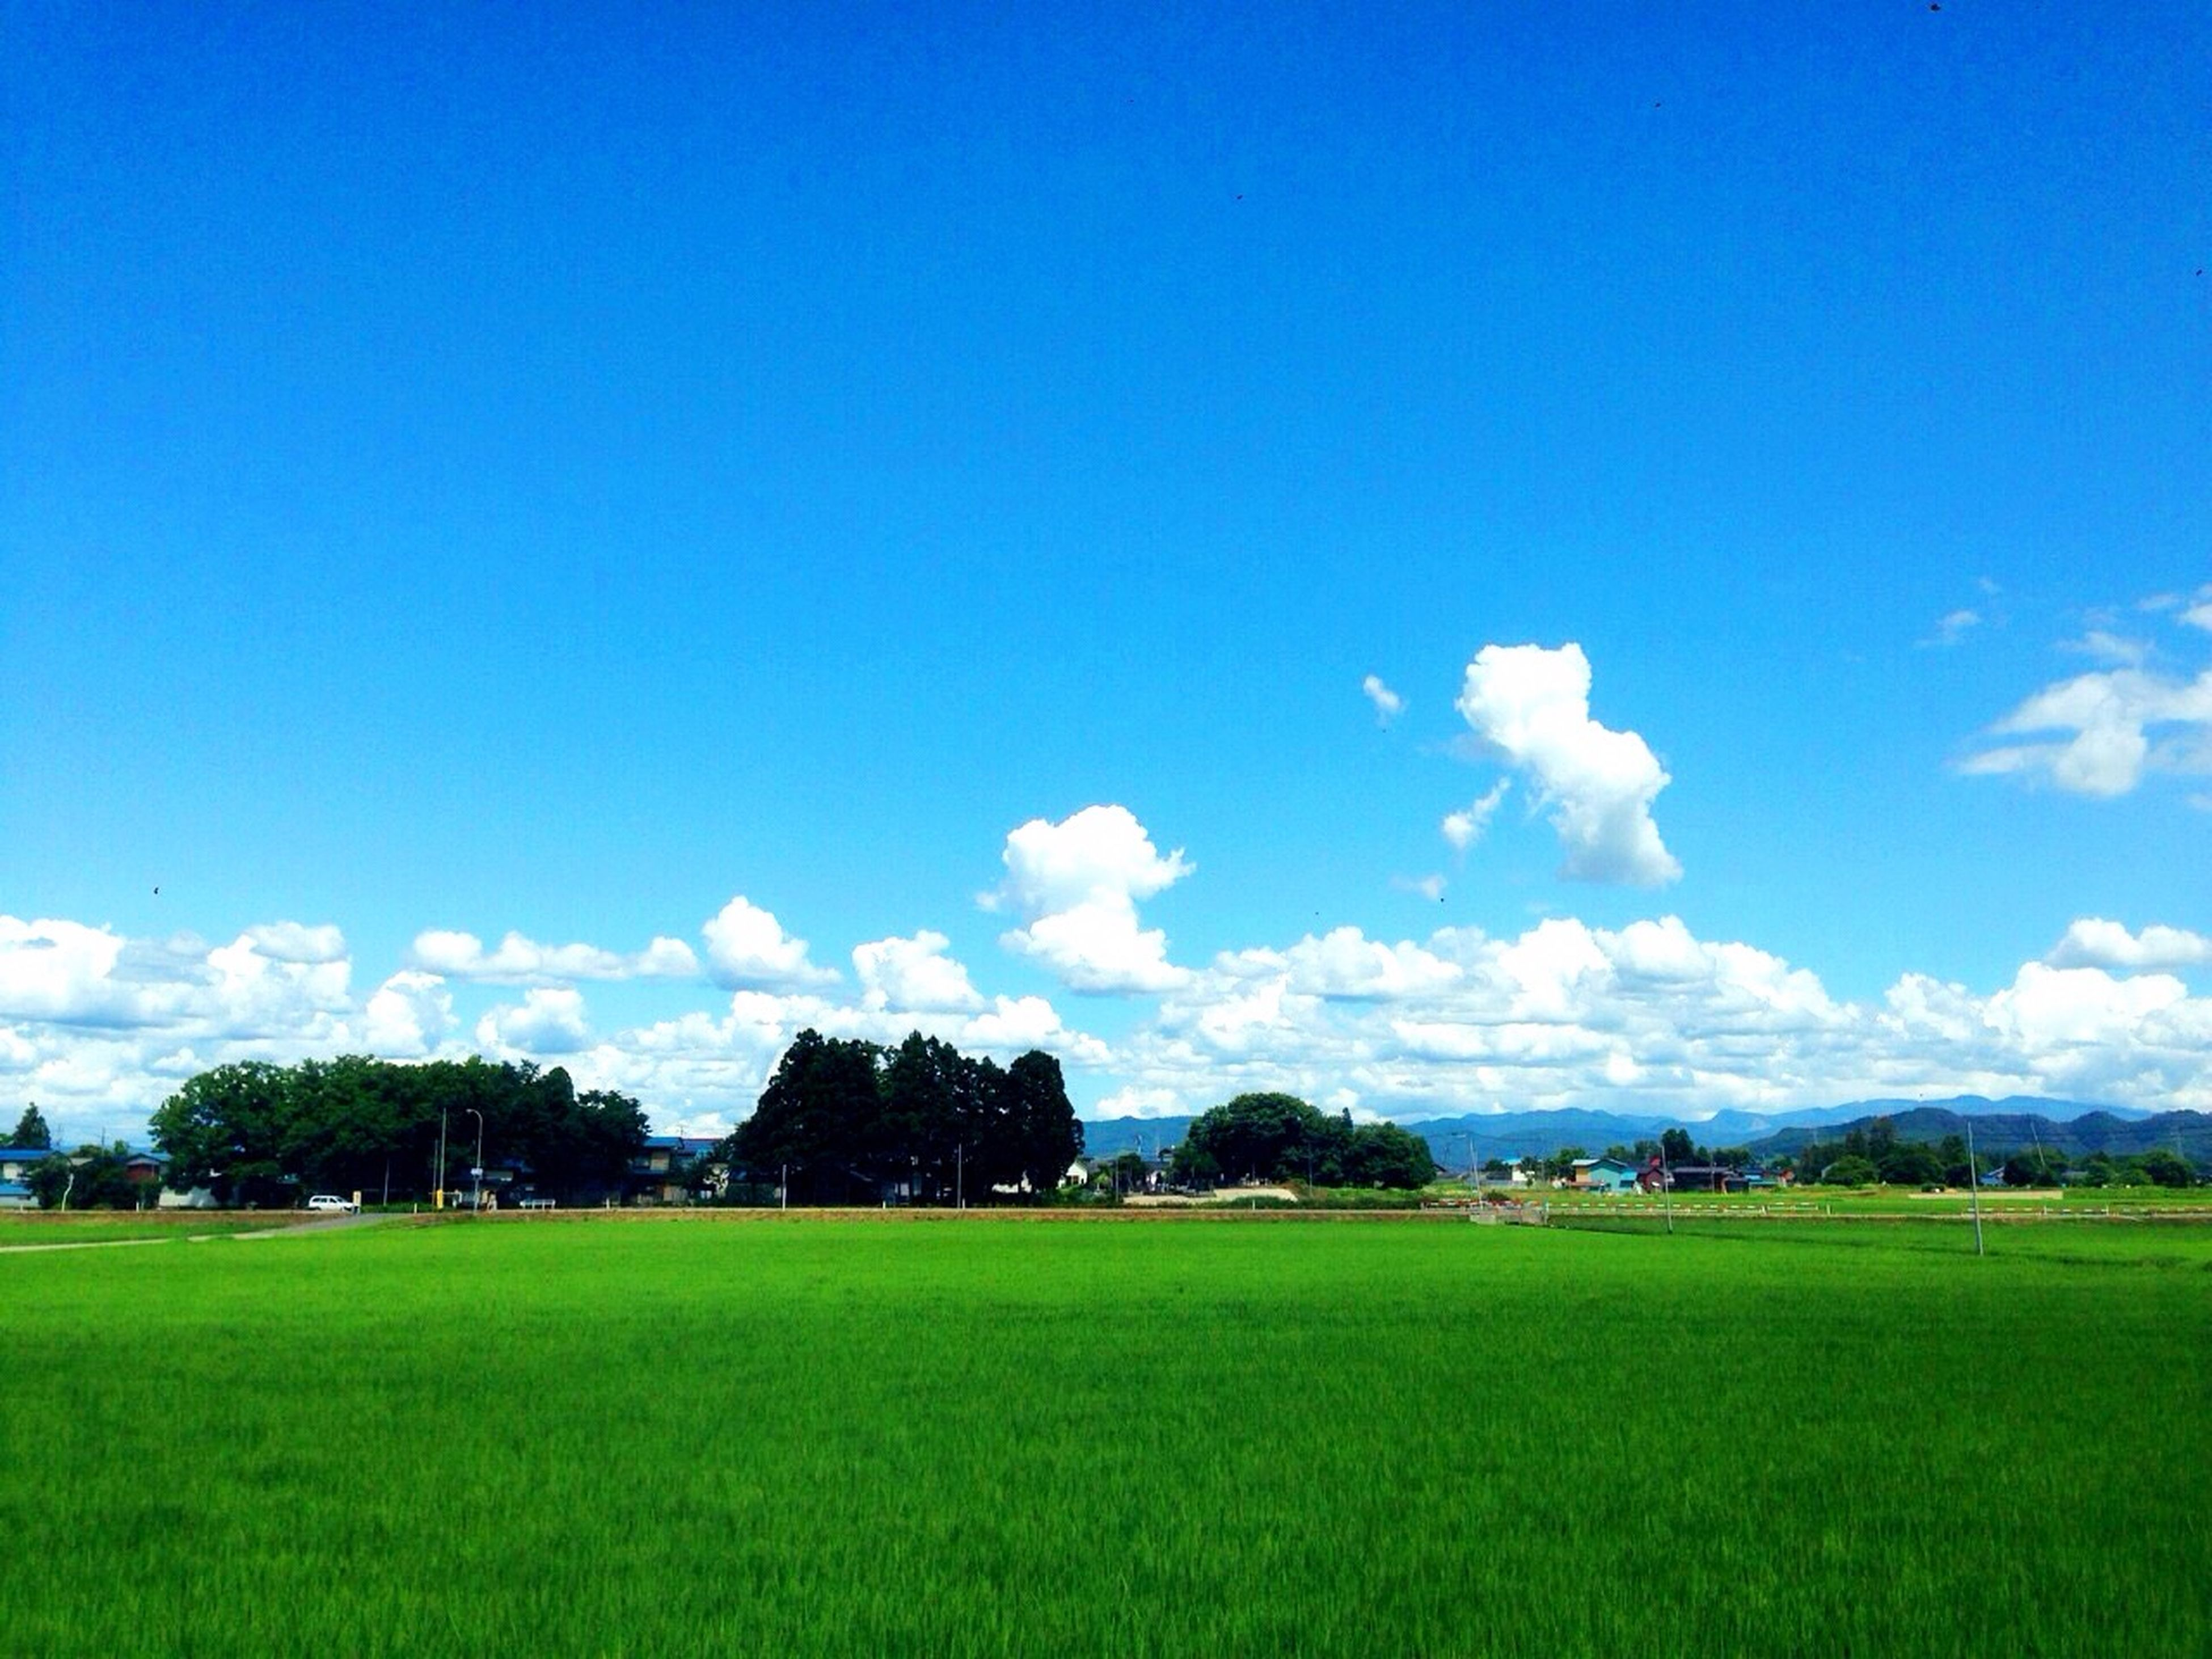 field, landscape, blue, grass, sky, tranquil scene, tranquility, tree, beauty in nature, green color, scenics, nature, rural scene, growth, agriculture, grassy, cloud, farm, green, idyllic